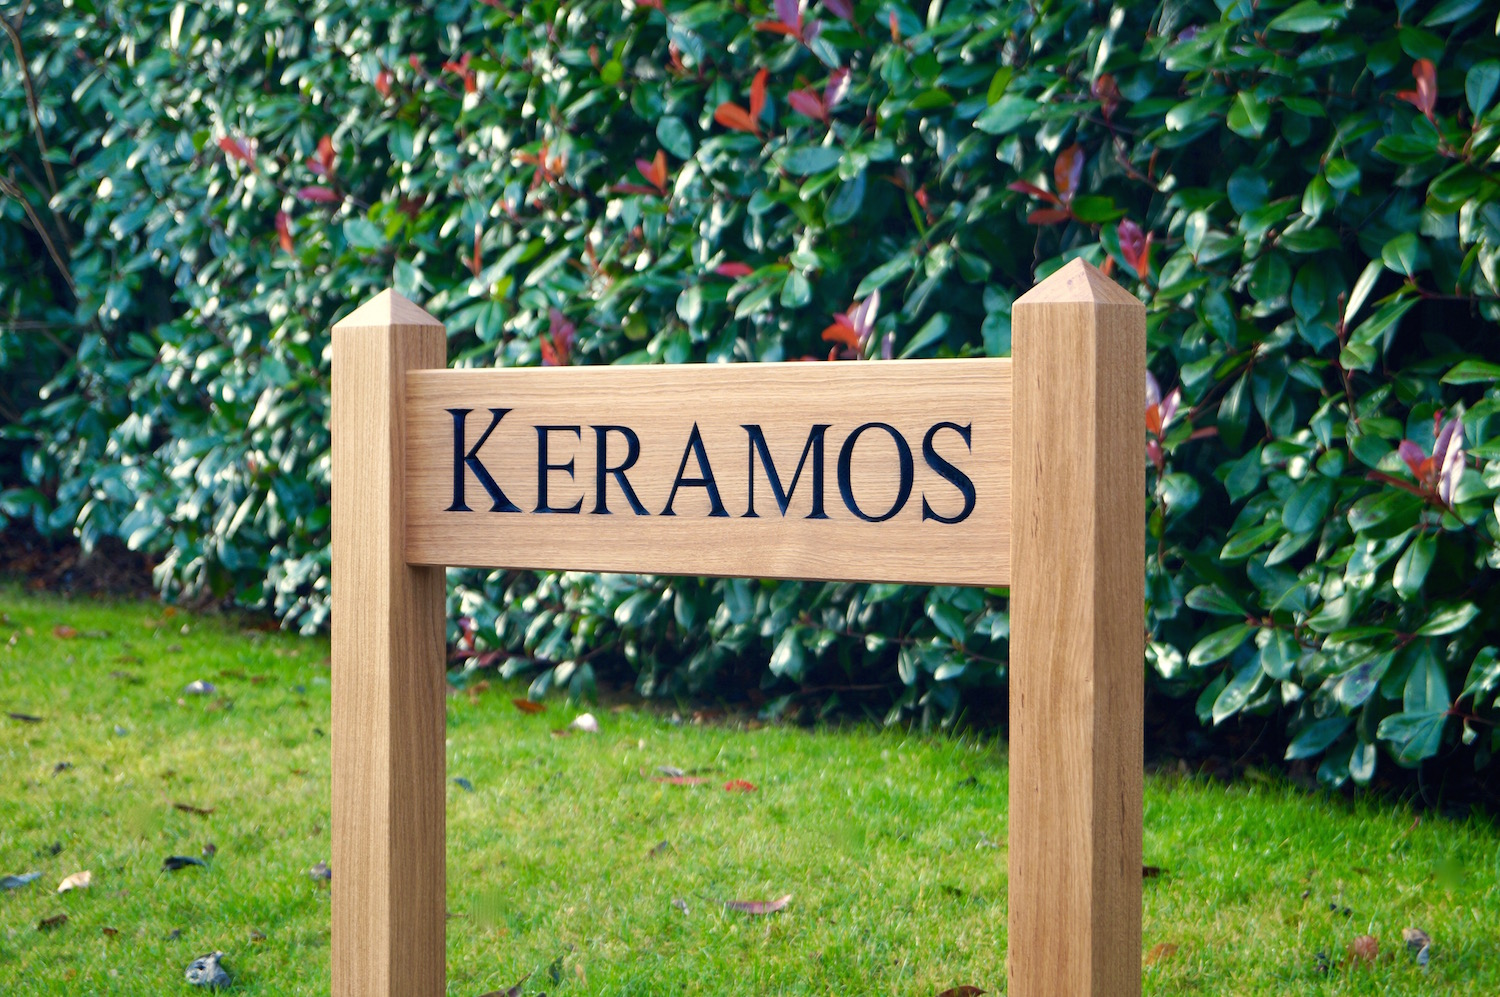 engraved-wooden-house-signs-makemesomethingspecial.com